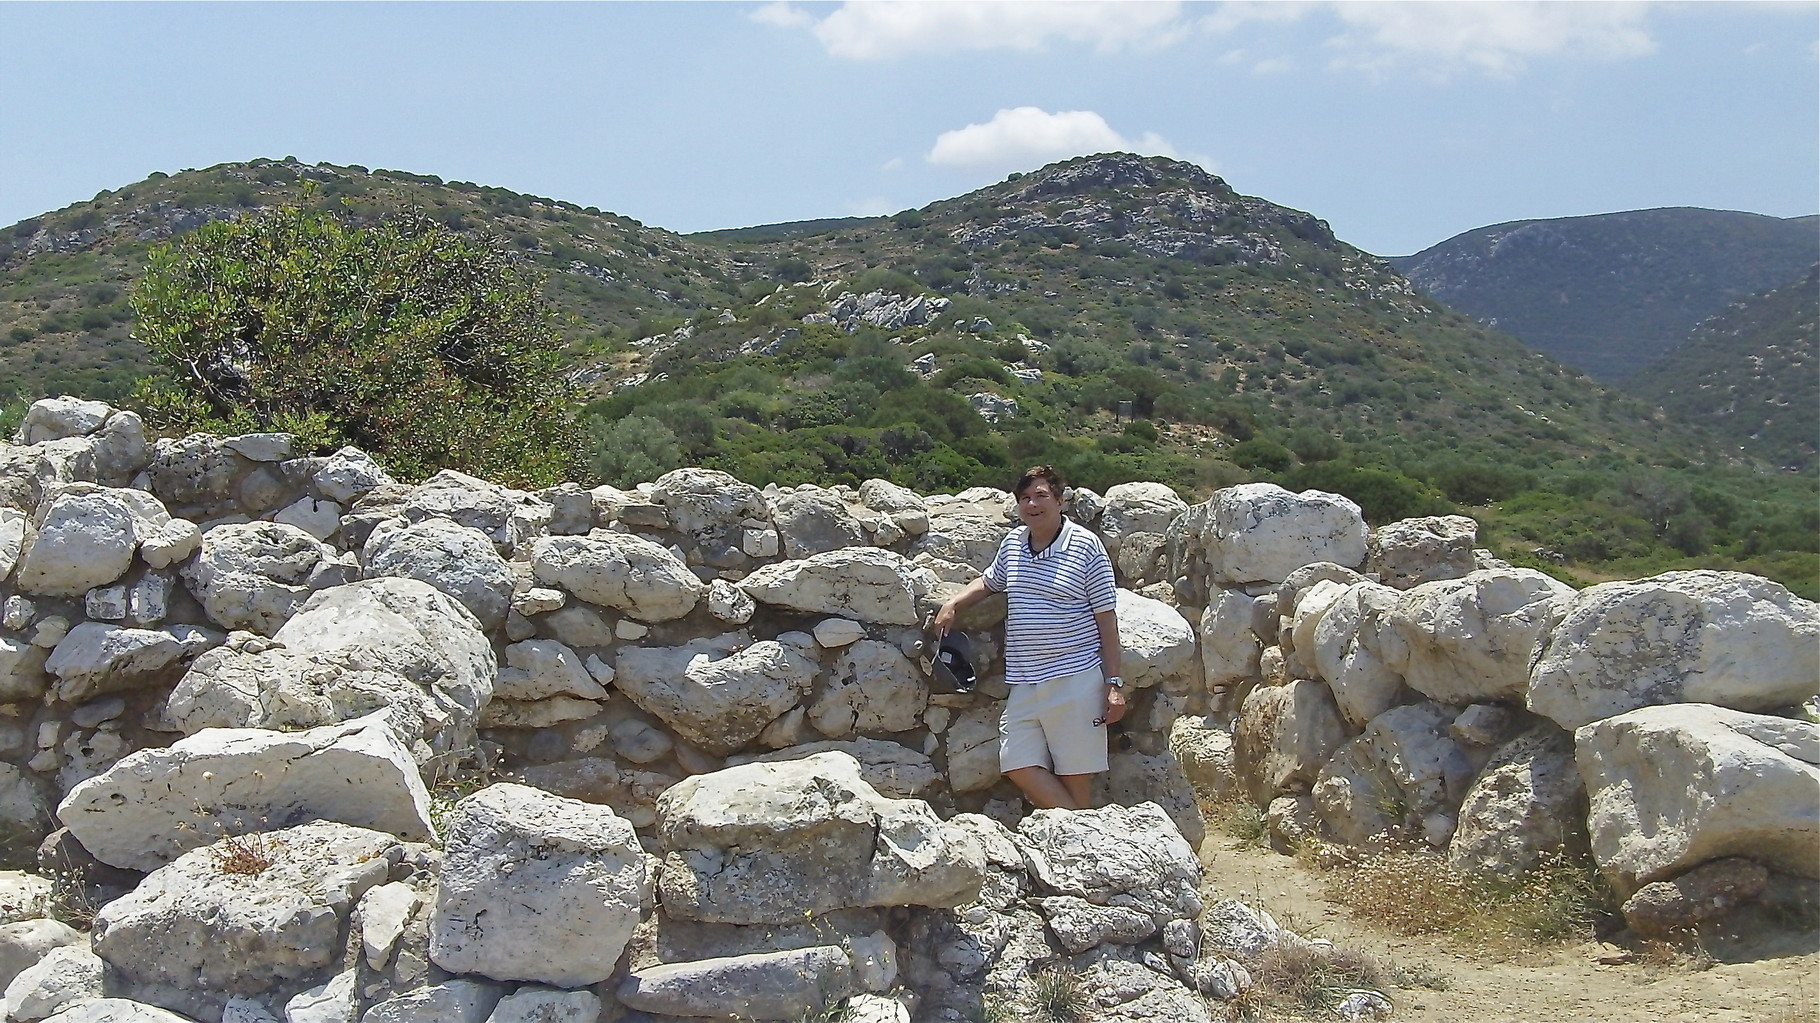 John at the ruins of the ancient Minoan city of Gournia